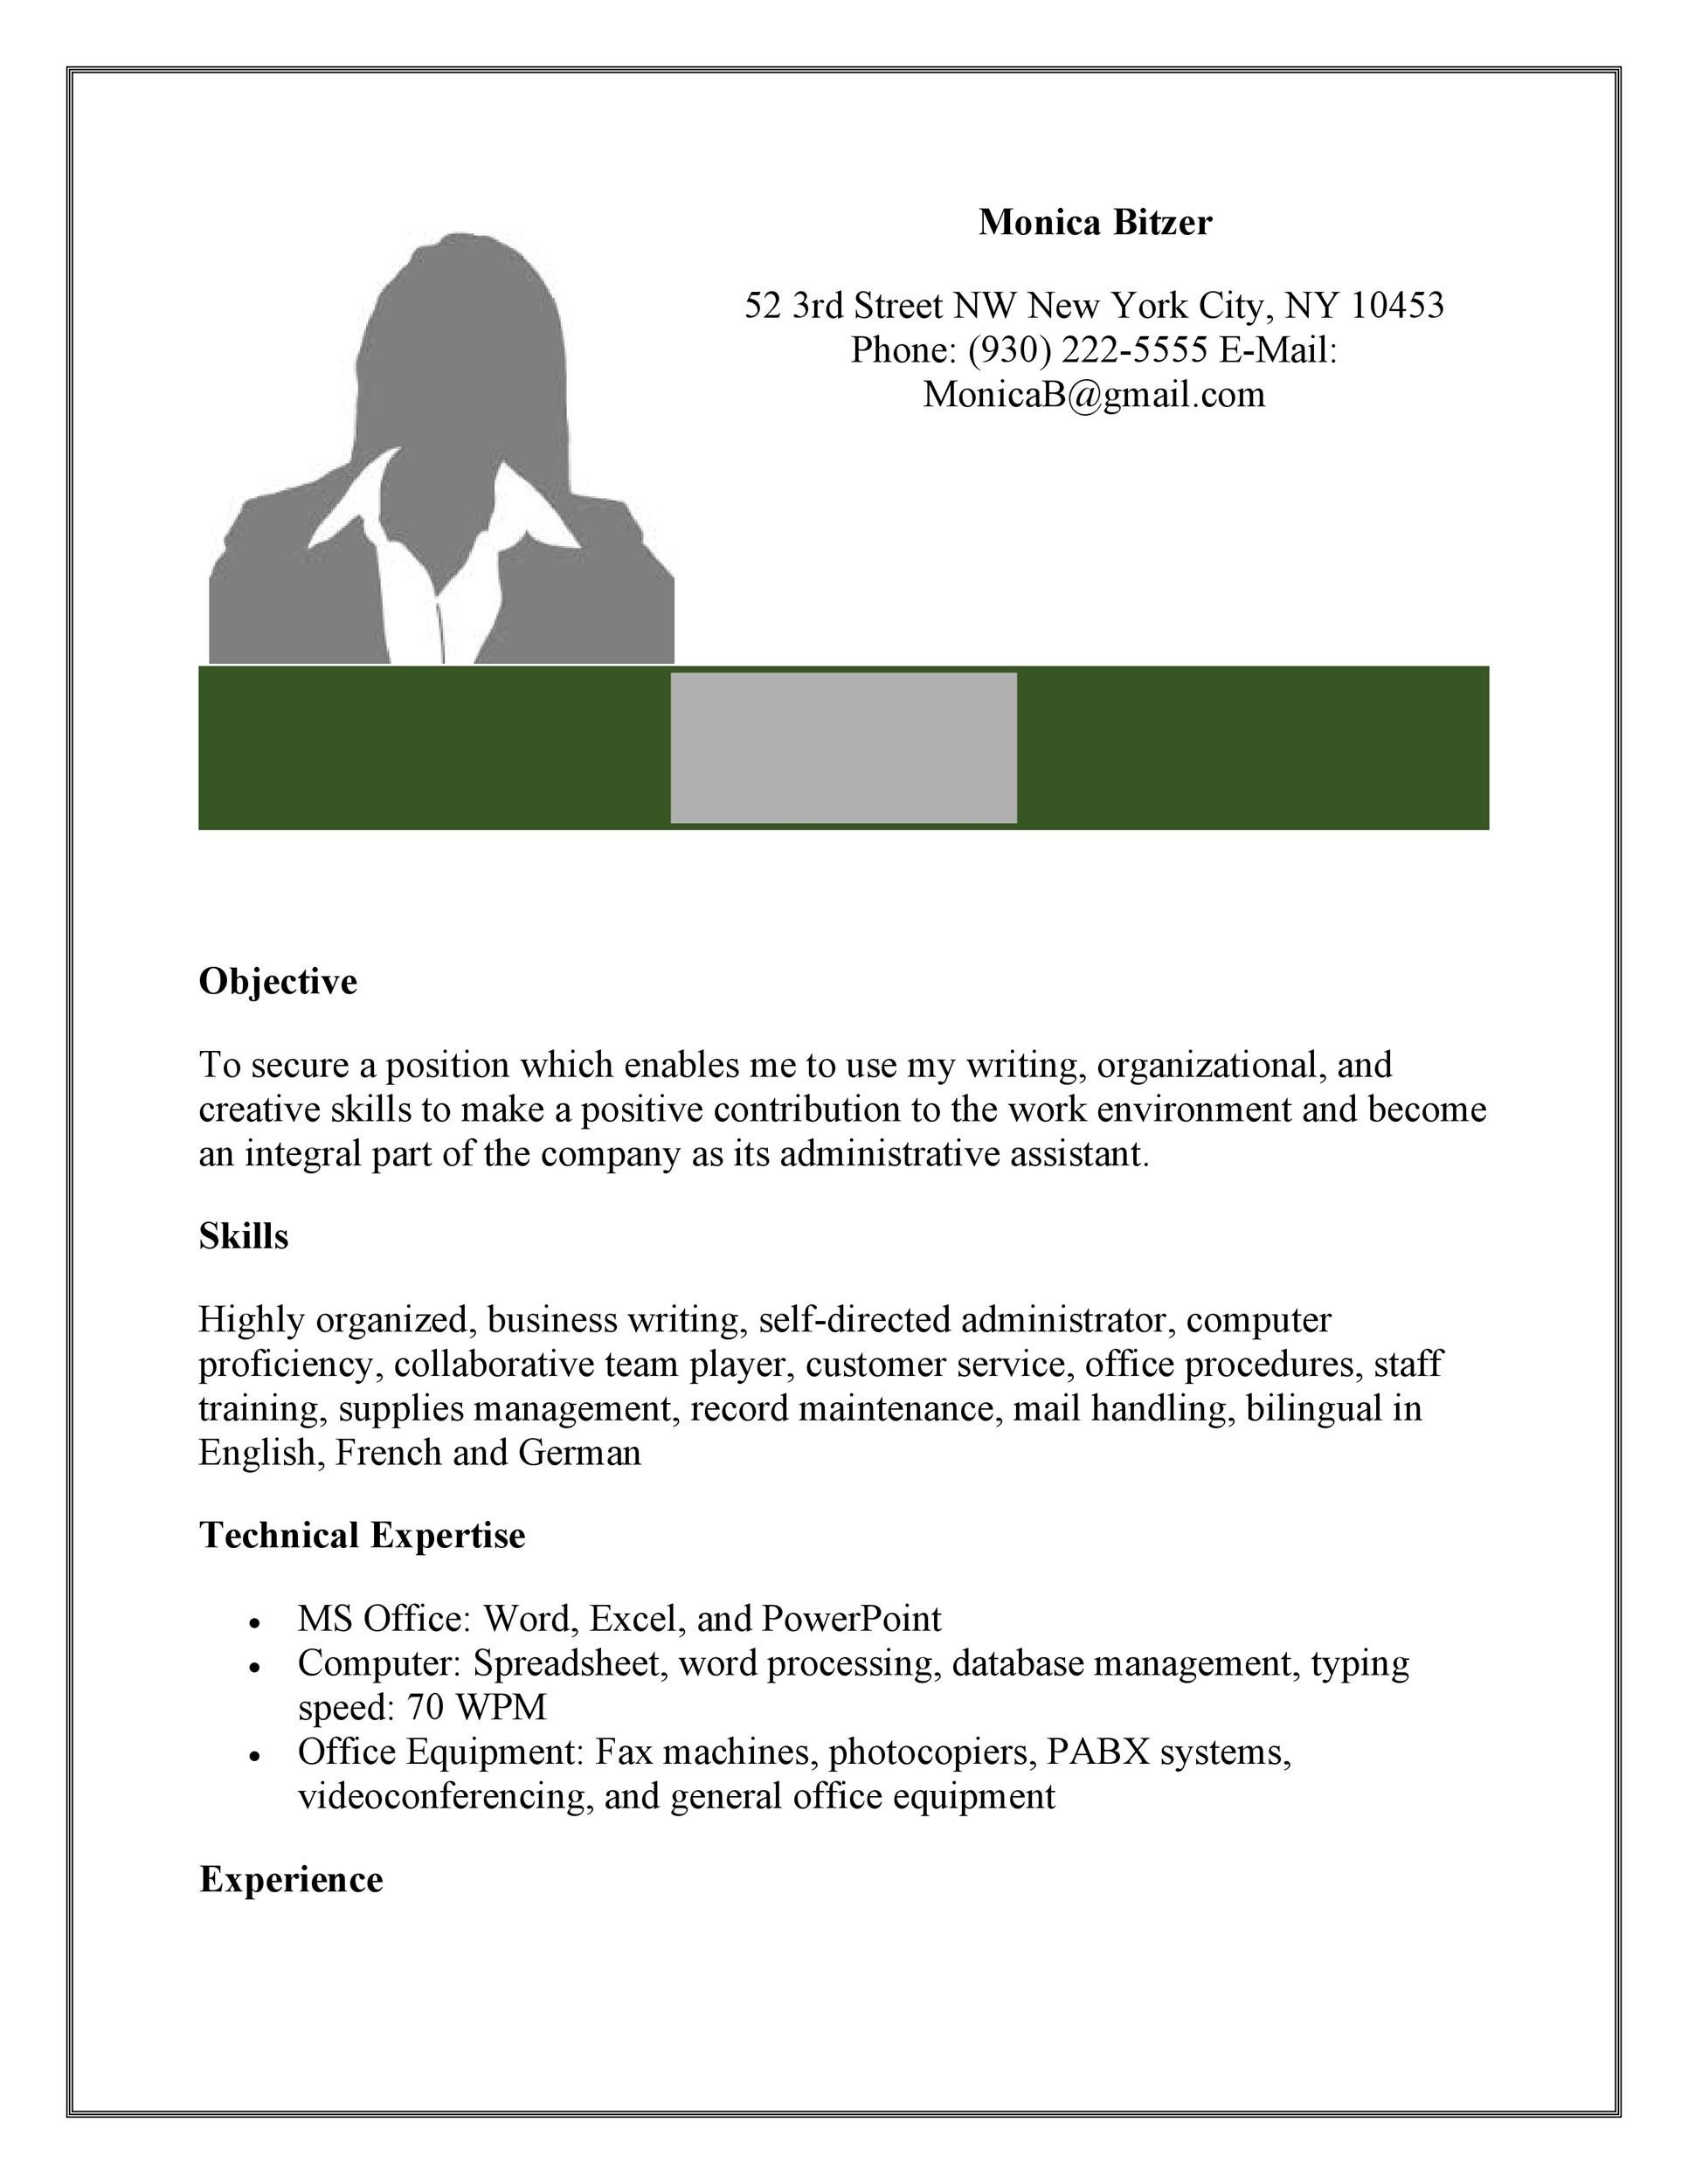 Best secretary resume example | livecareer.